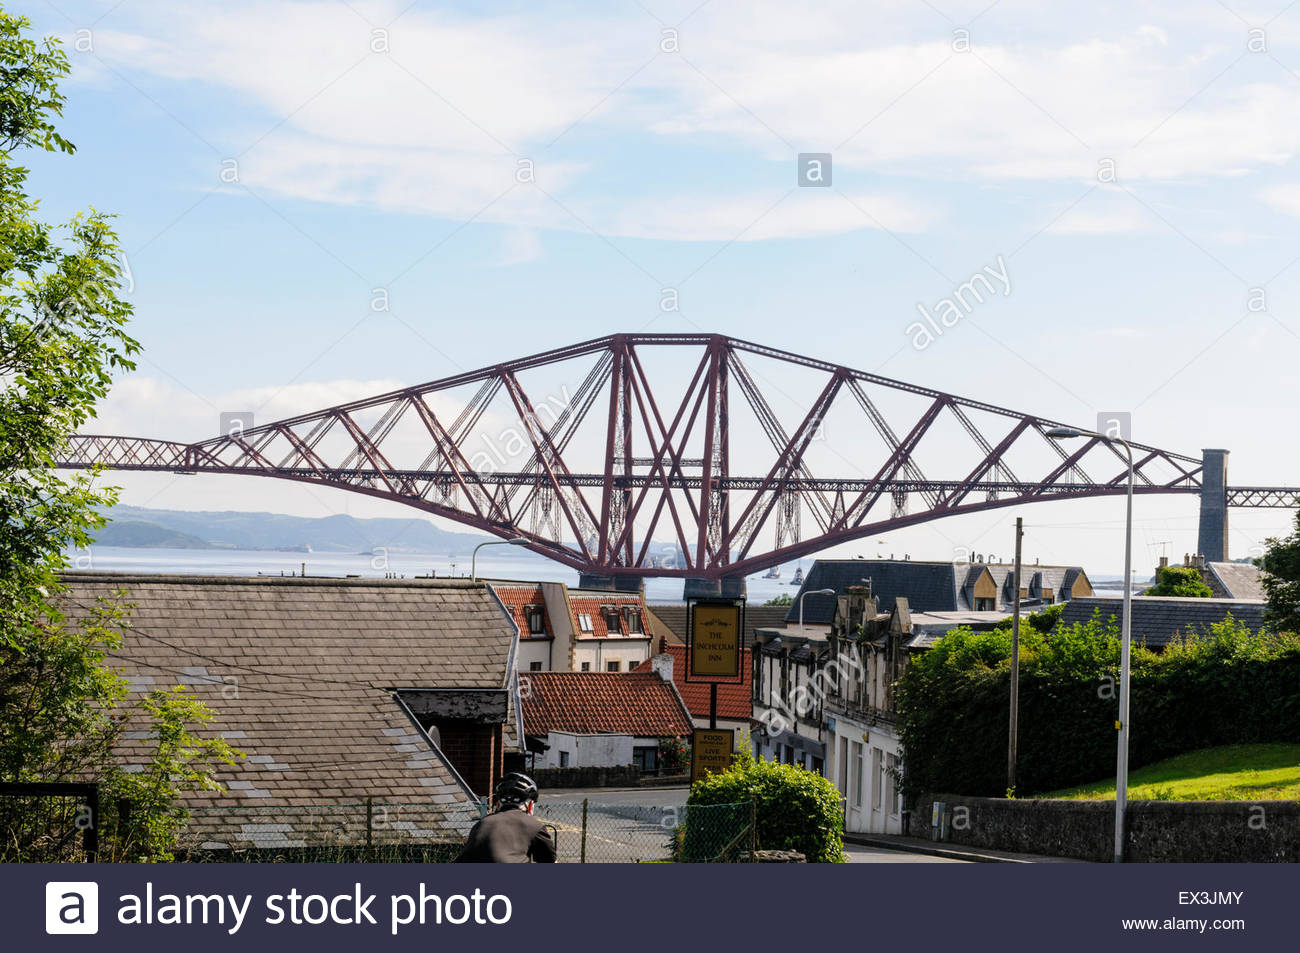 South Queensferry, UK. July 6, 2015. Forth Bridge dominates the view east from South Queensferry. The Forth Bridge - Stock Image